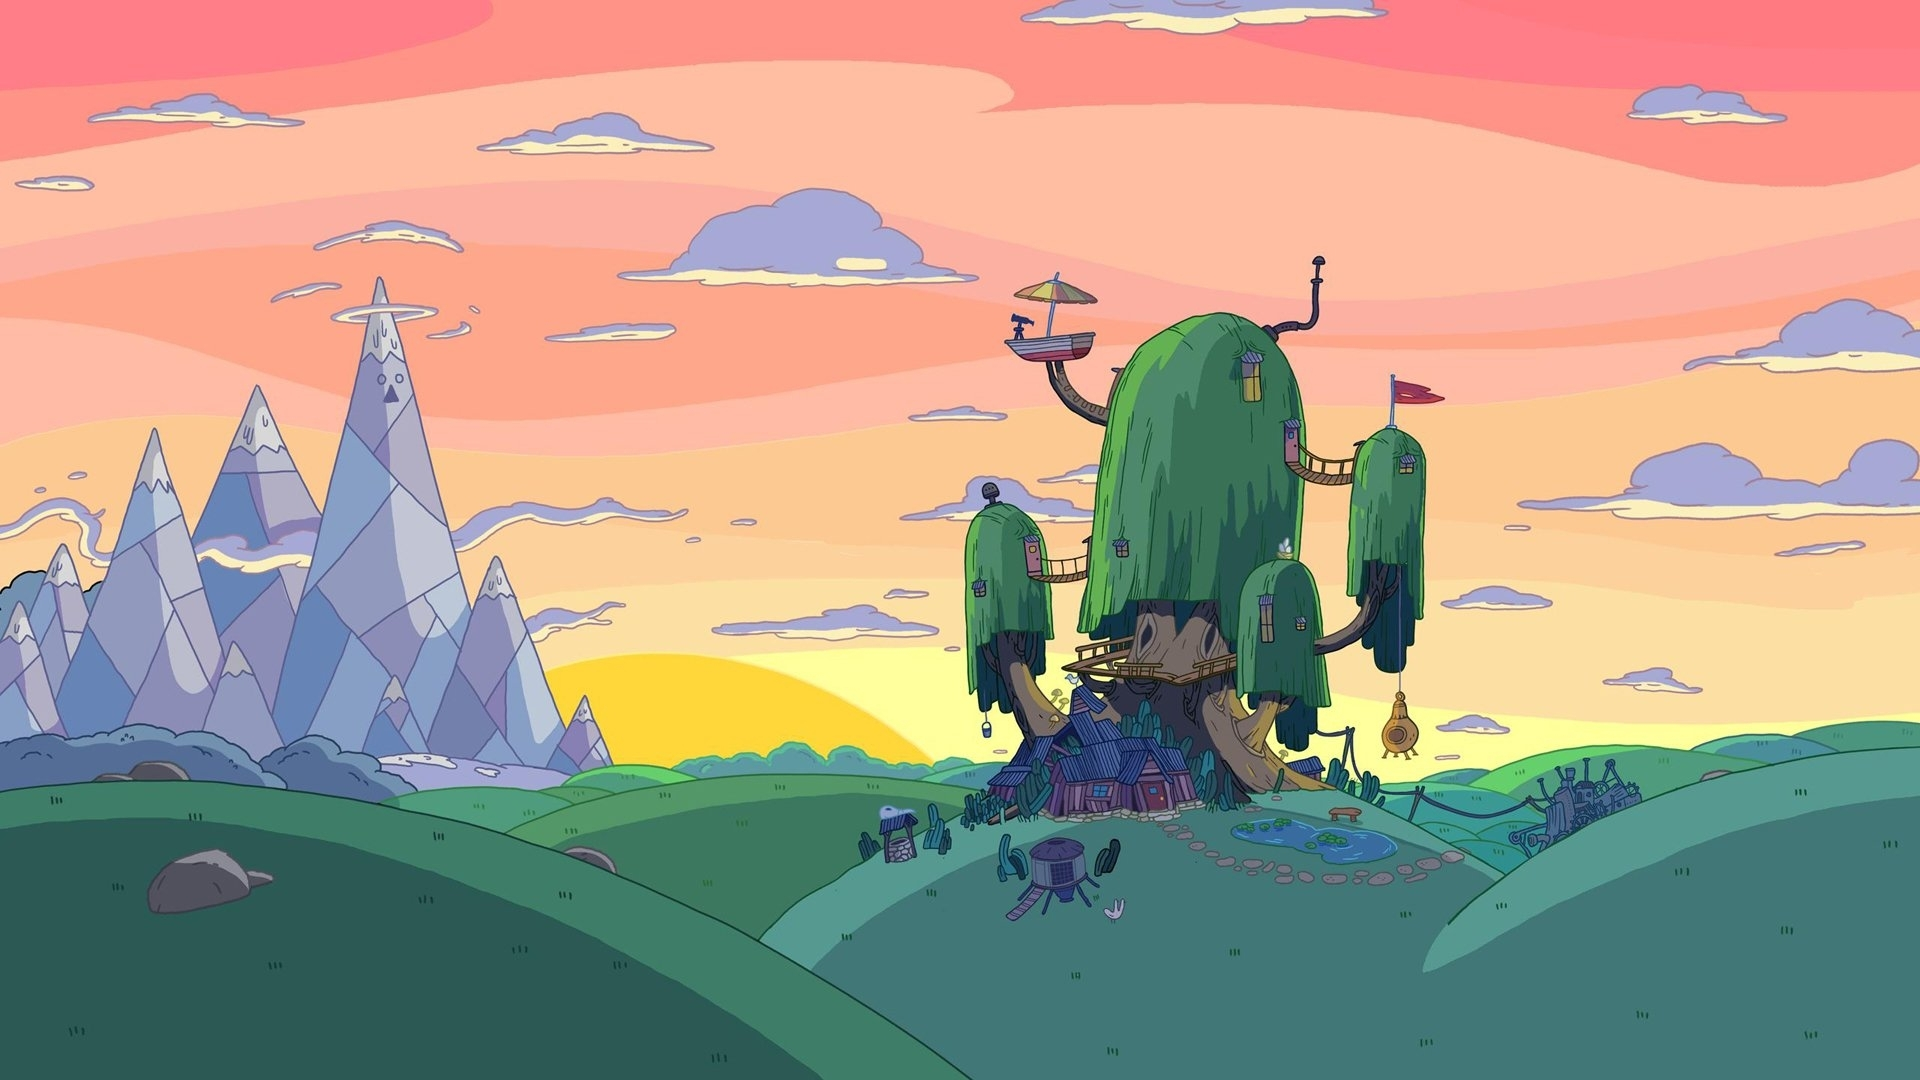 334 adventure time hd wallpapers | background images - wallpaper abyss